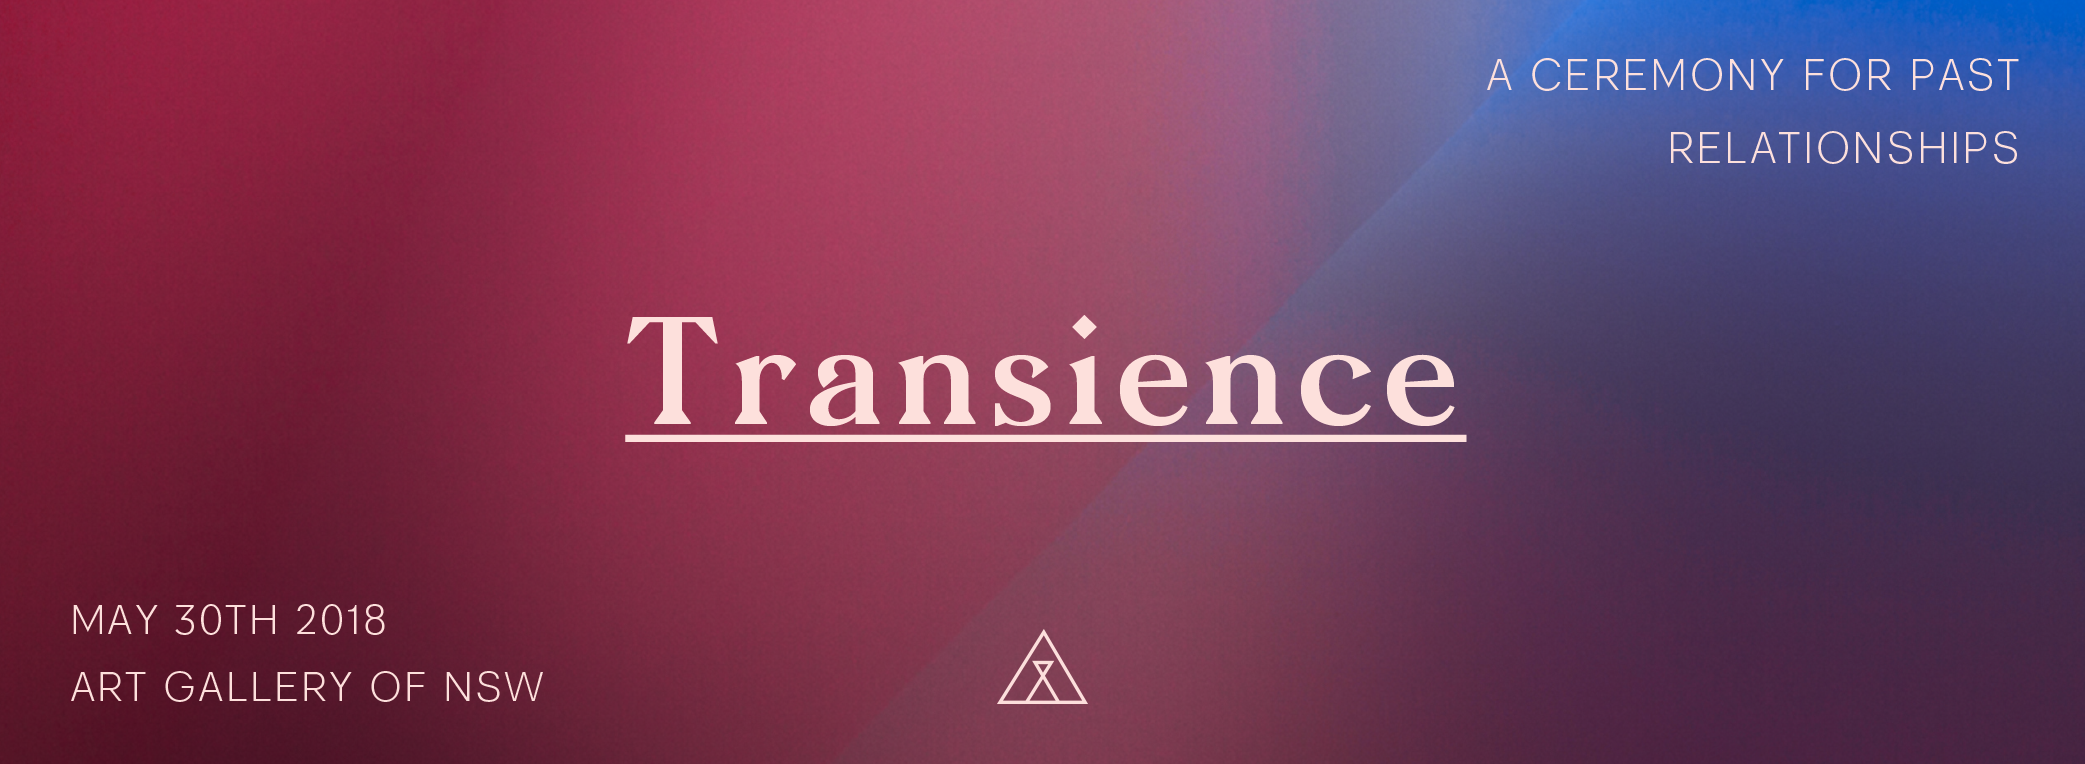 TRANSIENCE_Web Header